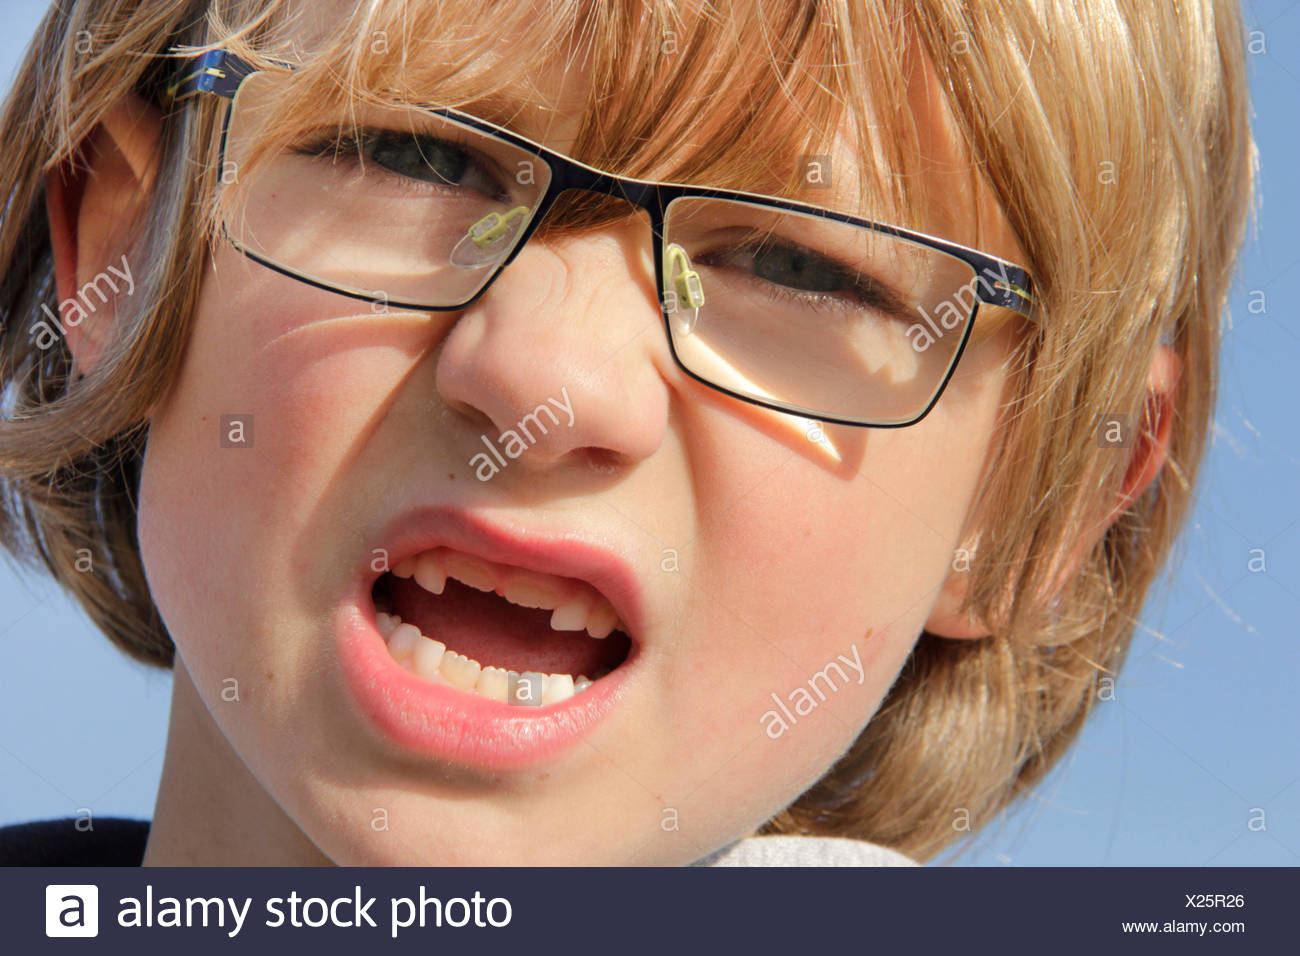 little boy with the second incisors, permanent dentition, portrait of a child - Stock Image